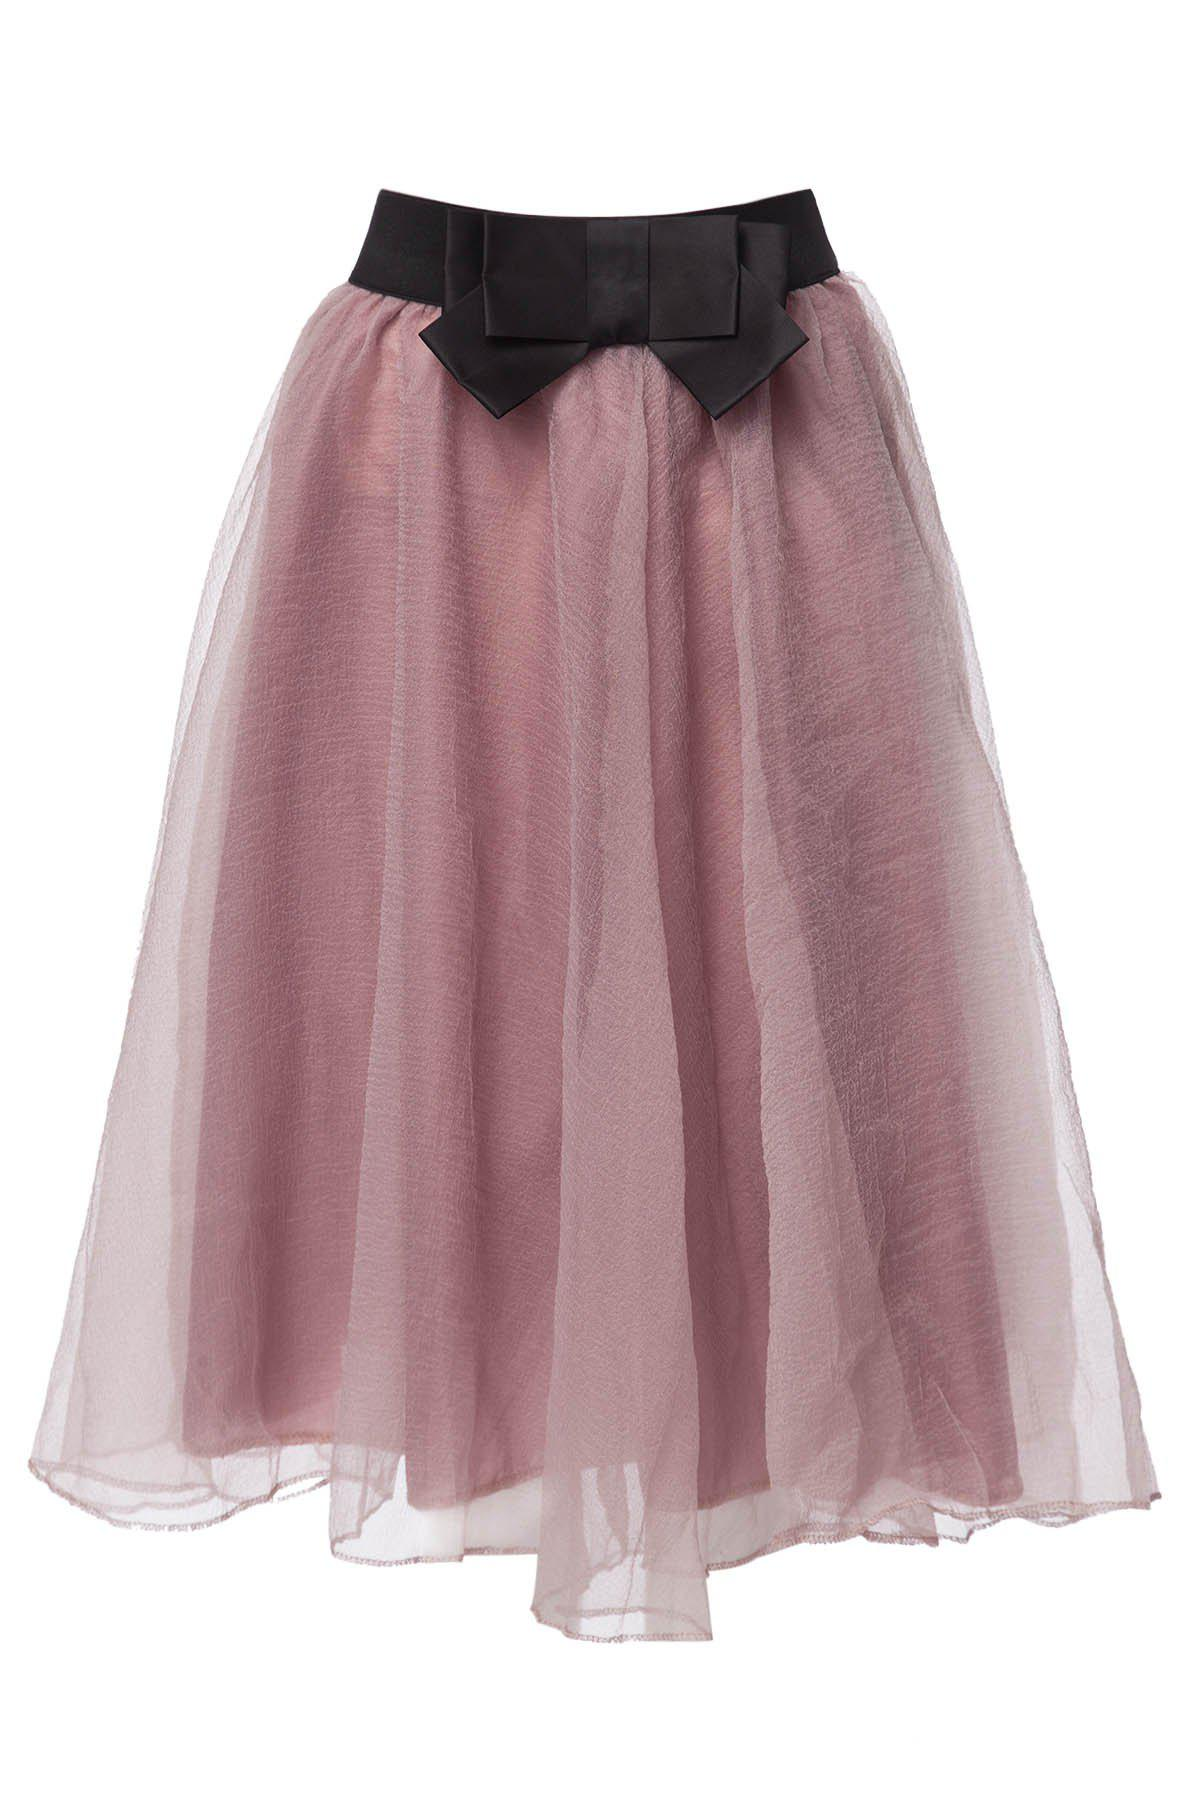 Stylish High Waisted Voile Spliced A-Line Women's Skirt - PINK ONE SIZE(FIT SIZE XS TO M)